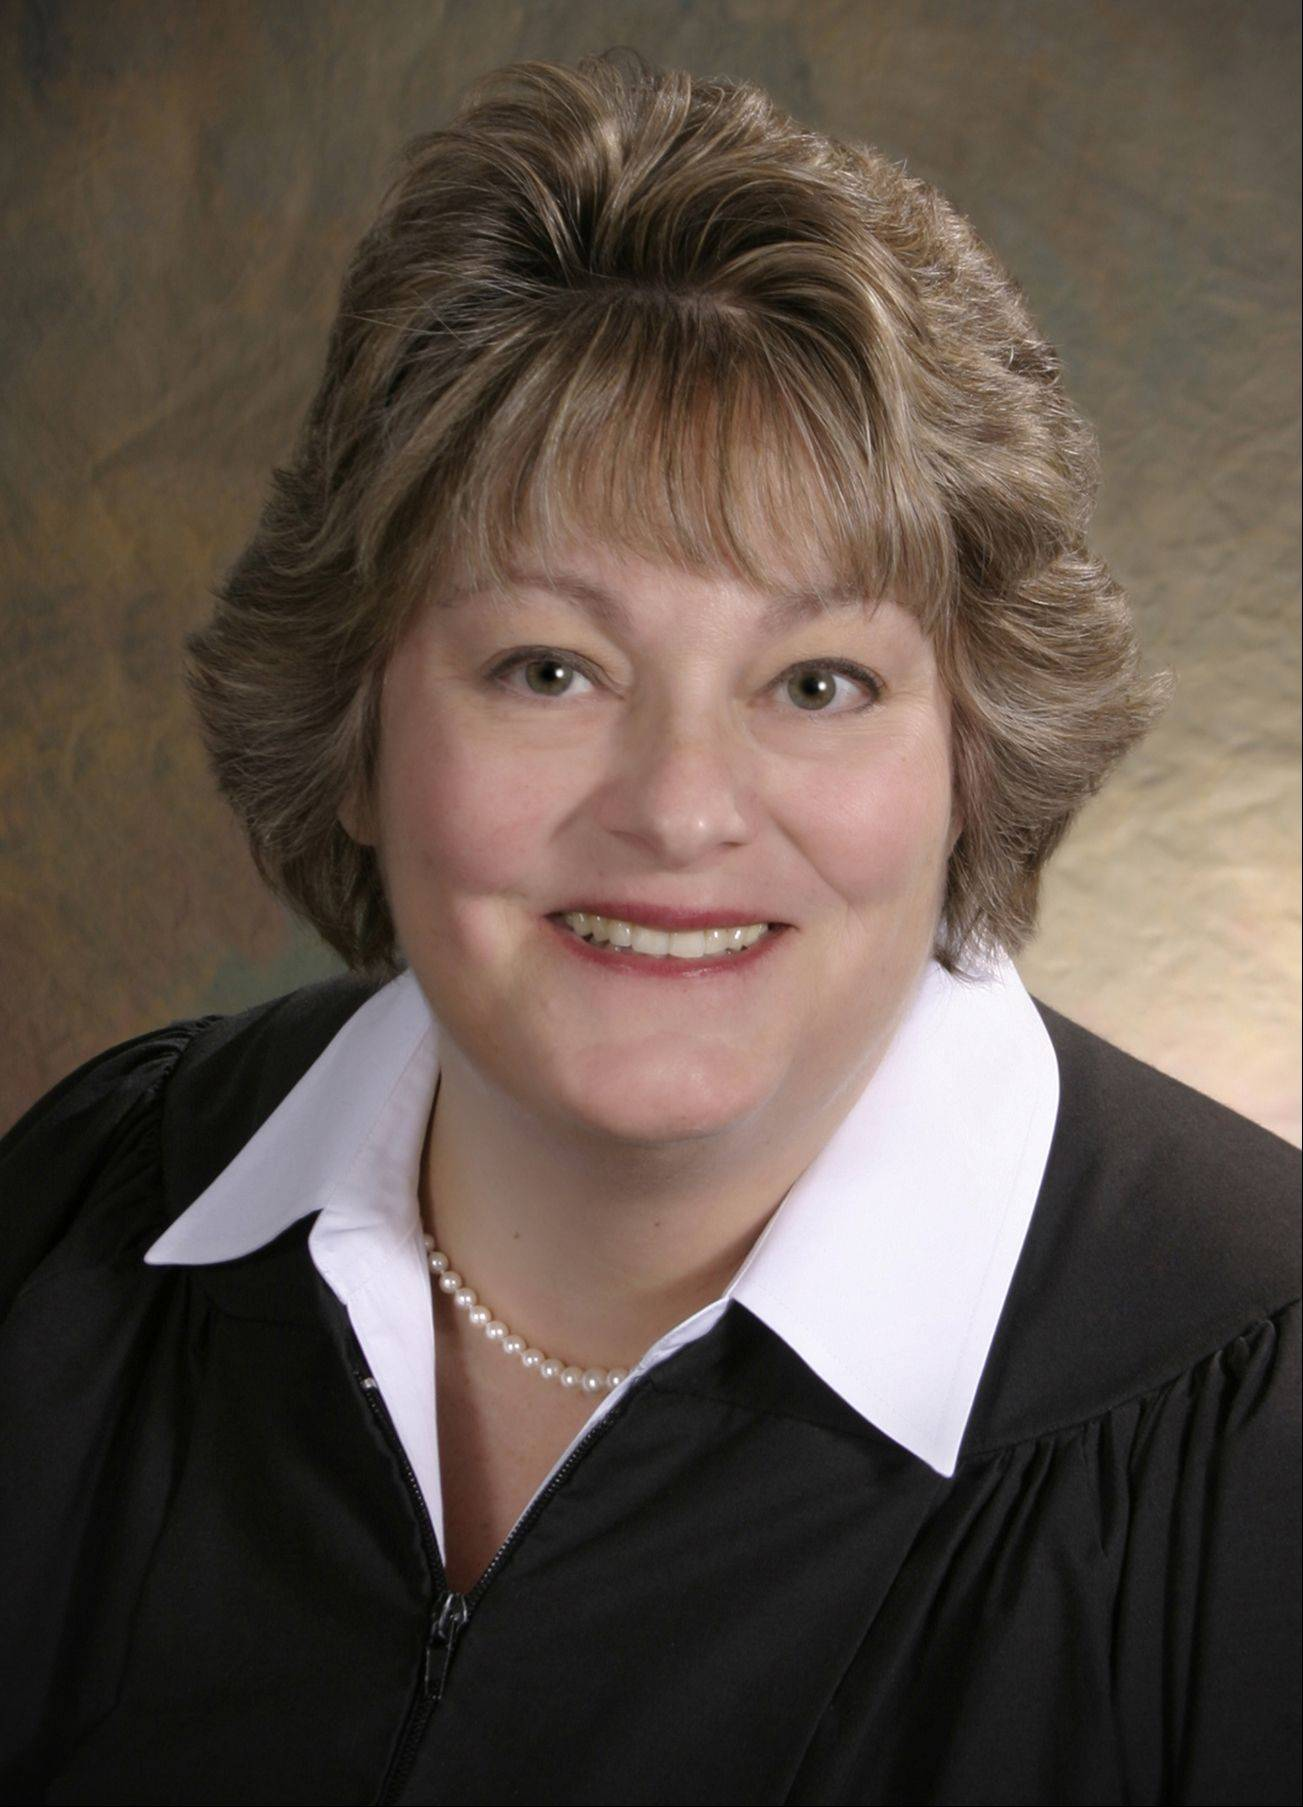 Judge Judith M. Brawka is the new chief judge of the 16th Judicial Circuit.